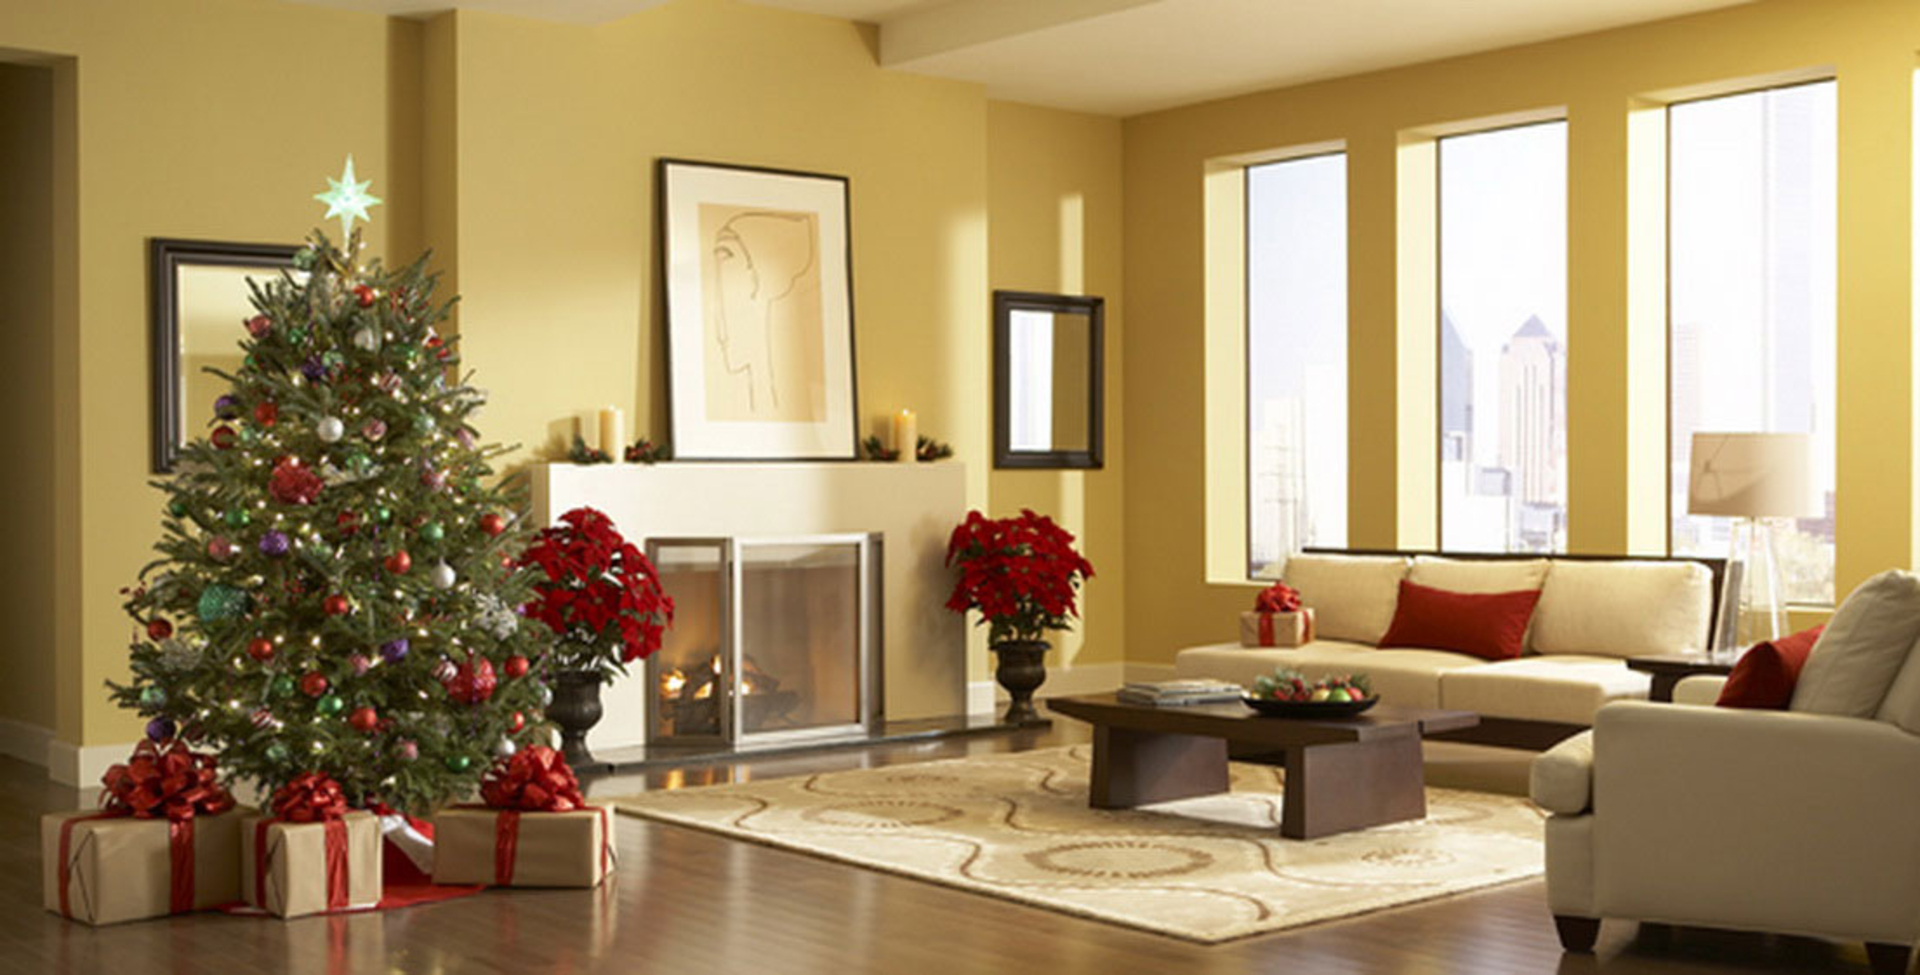 decorations-for-christmas-living-room-design